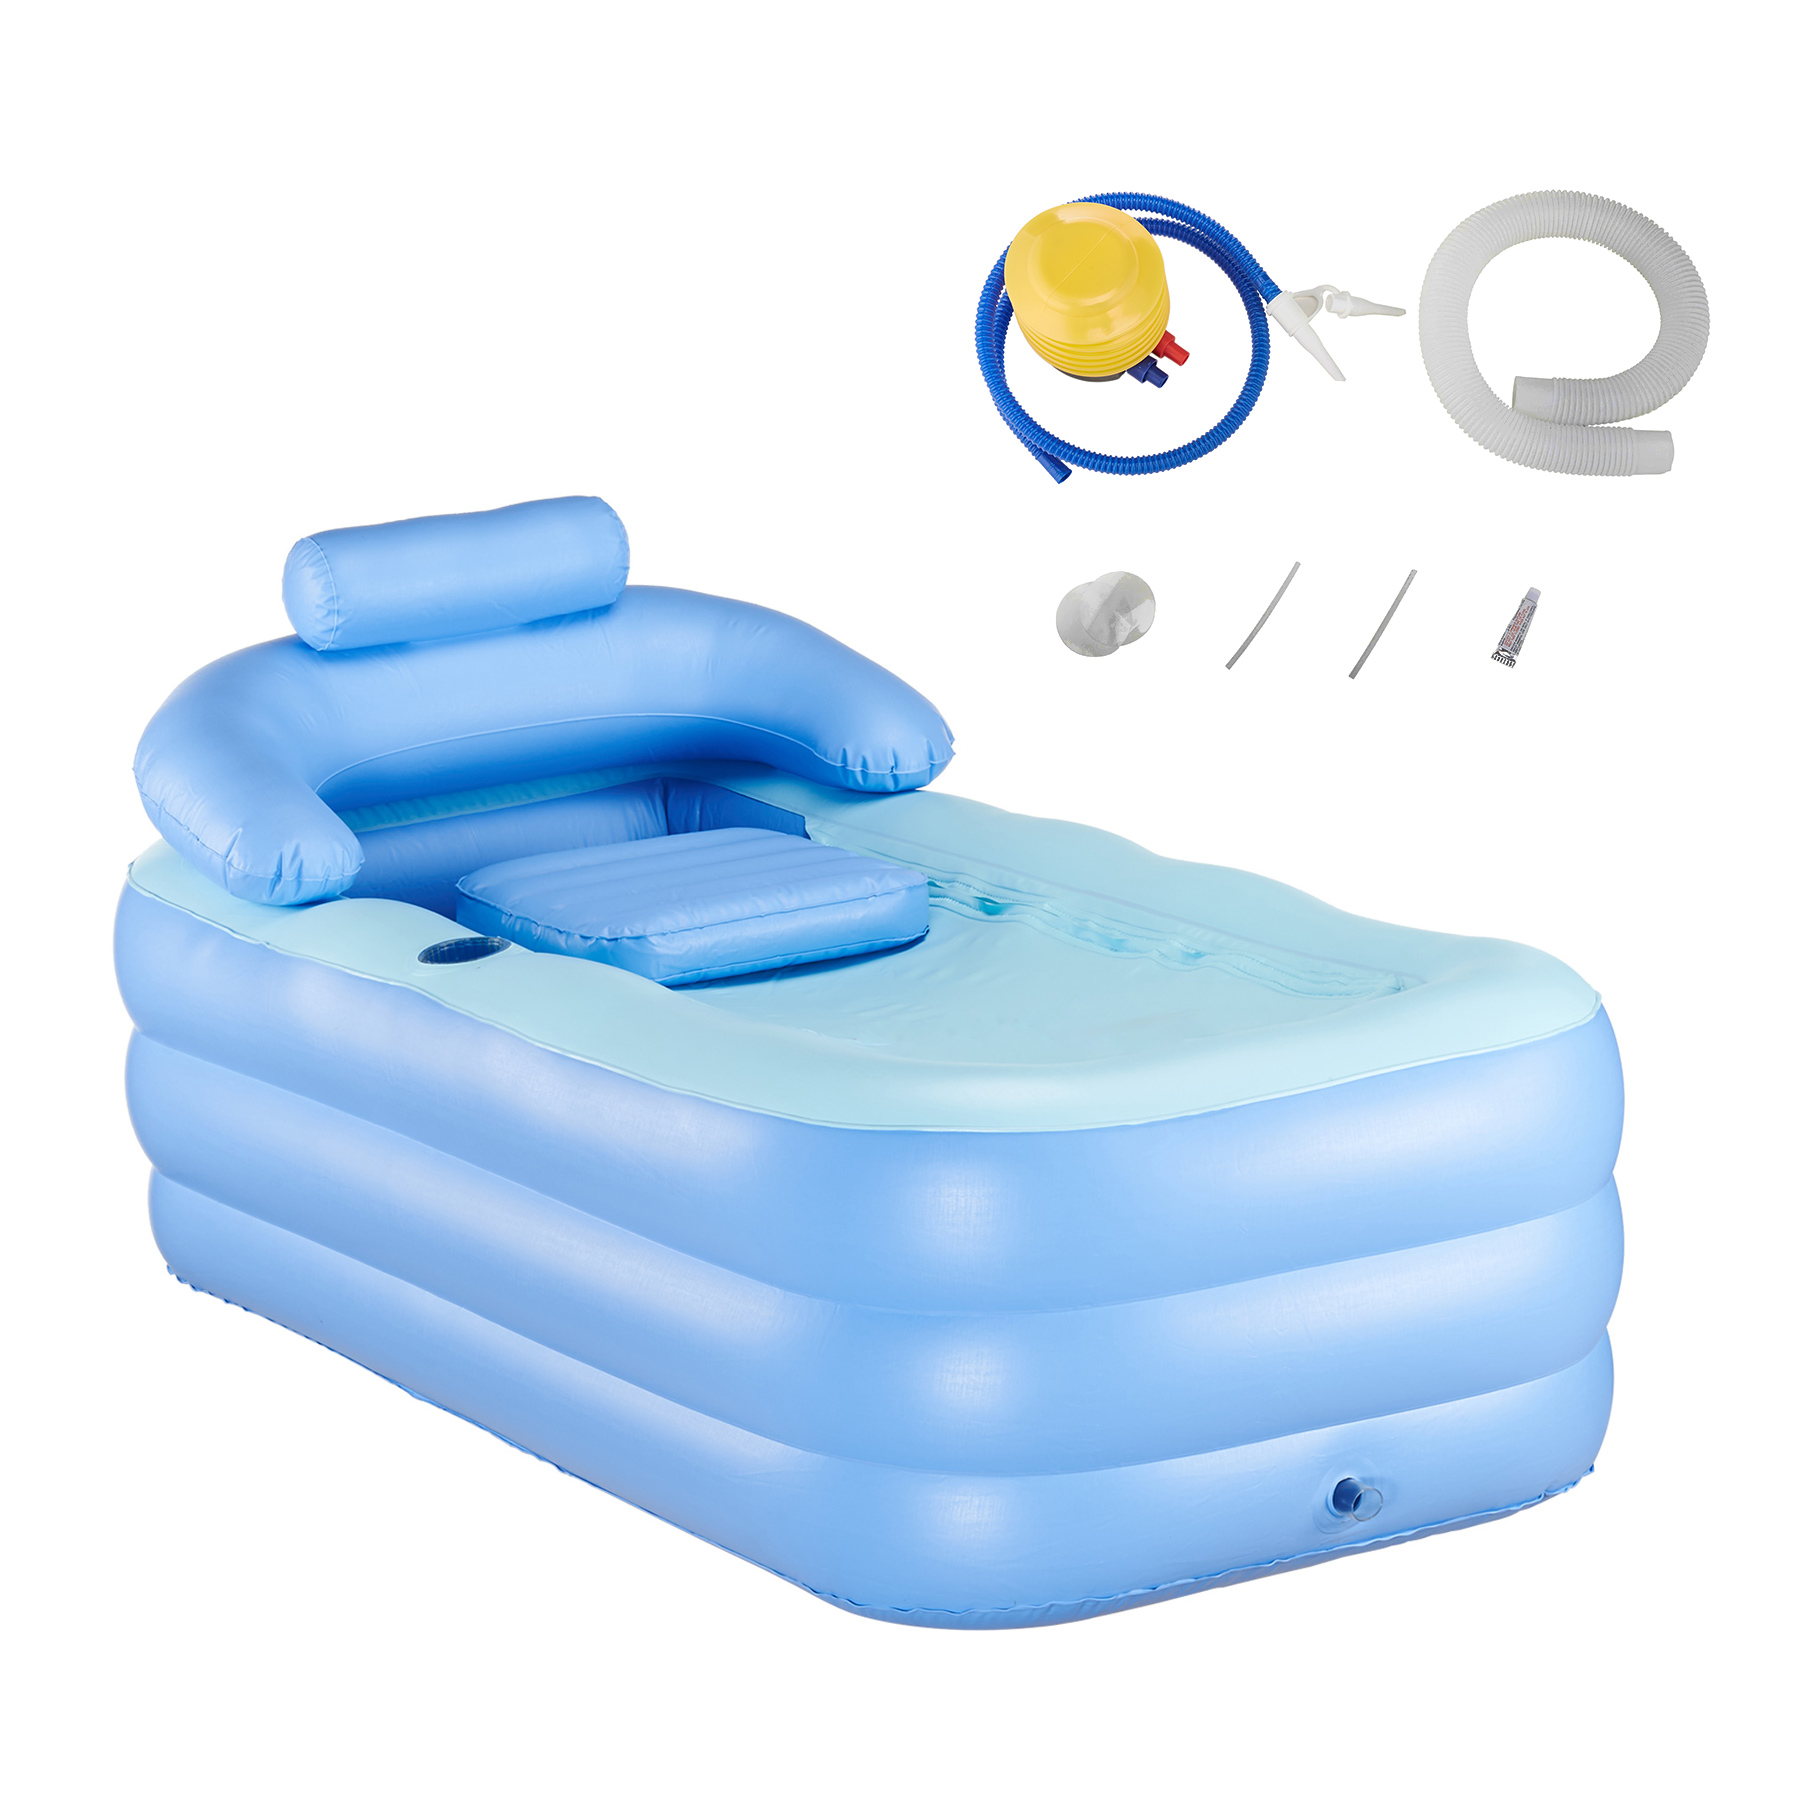 PVC Portable Spa Warm Bathtub Blow Up Adult Inflatable Bath Tub Air Pump Kit